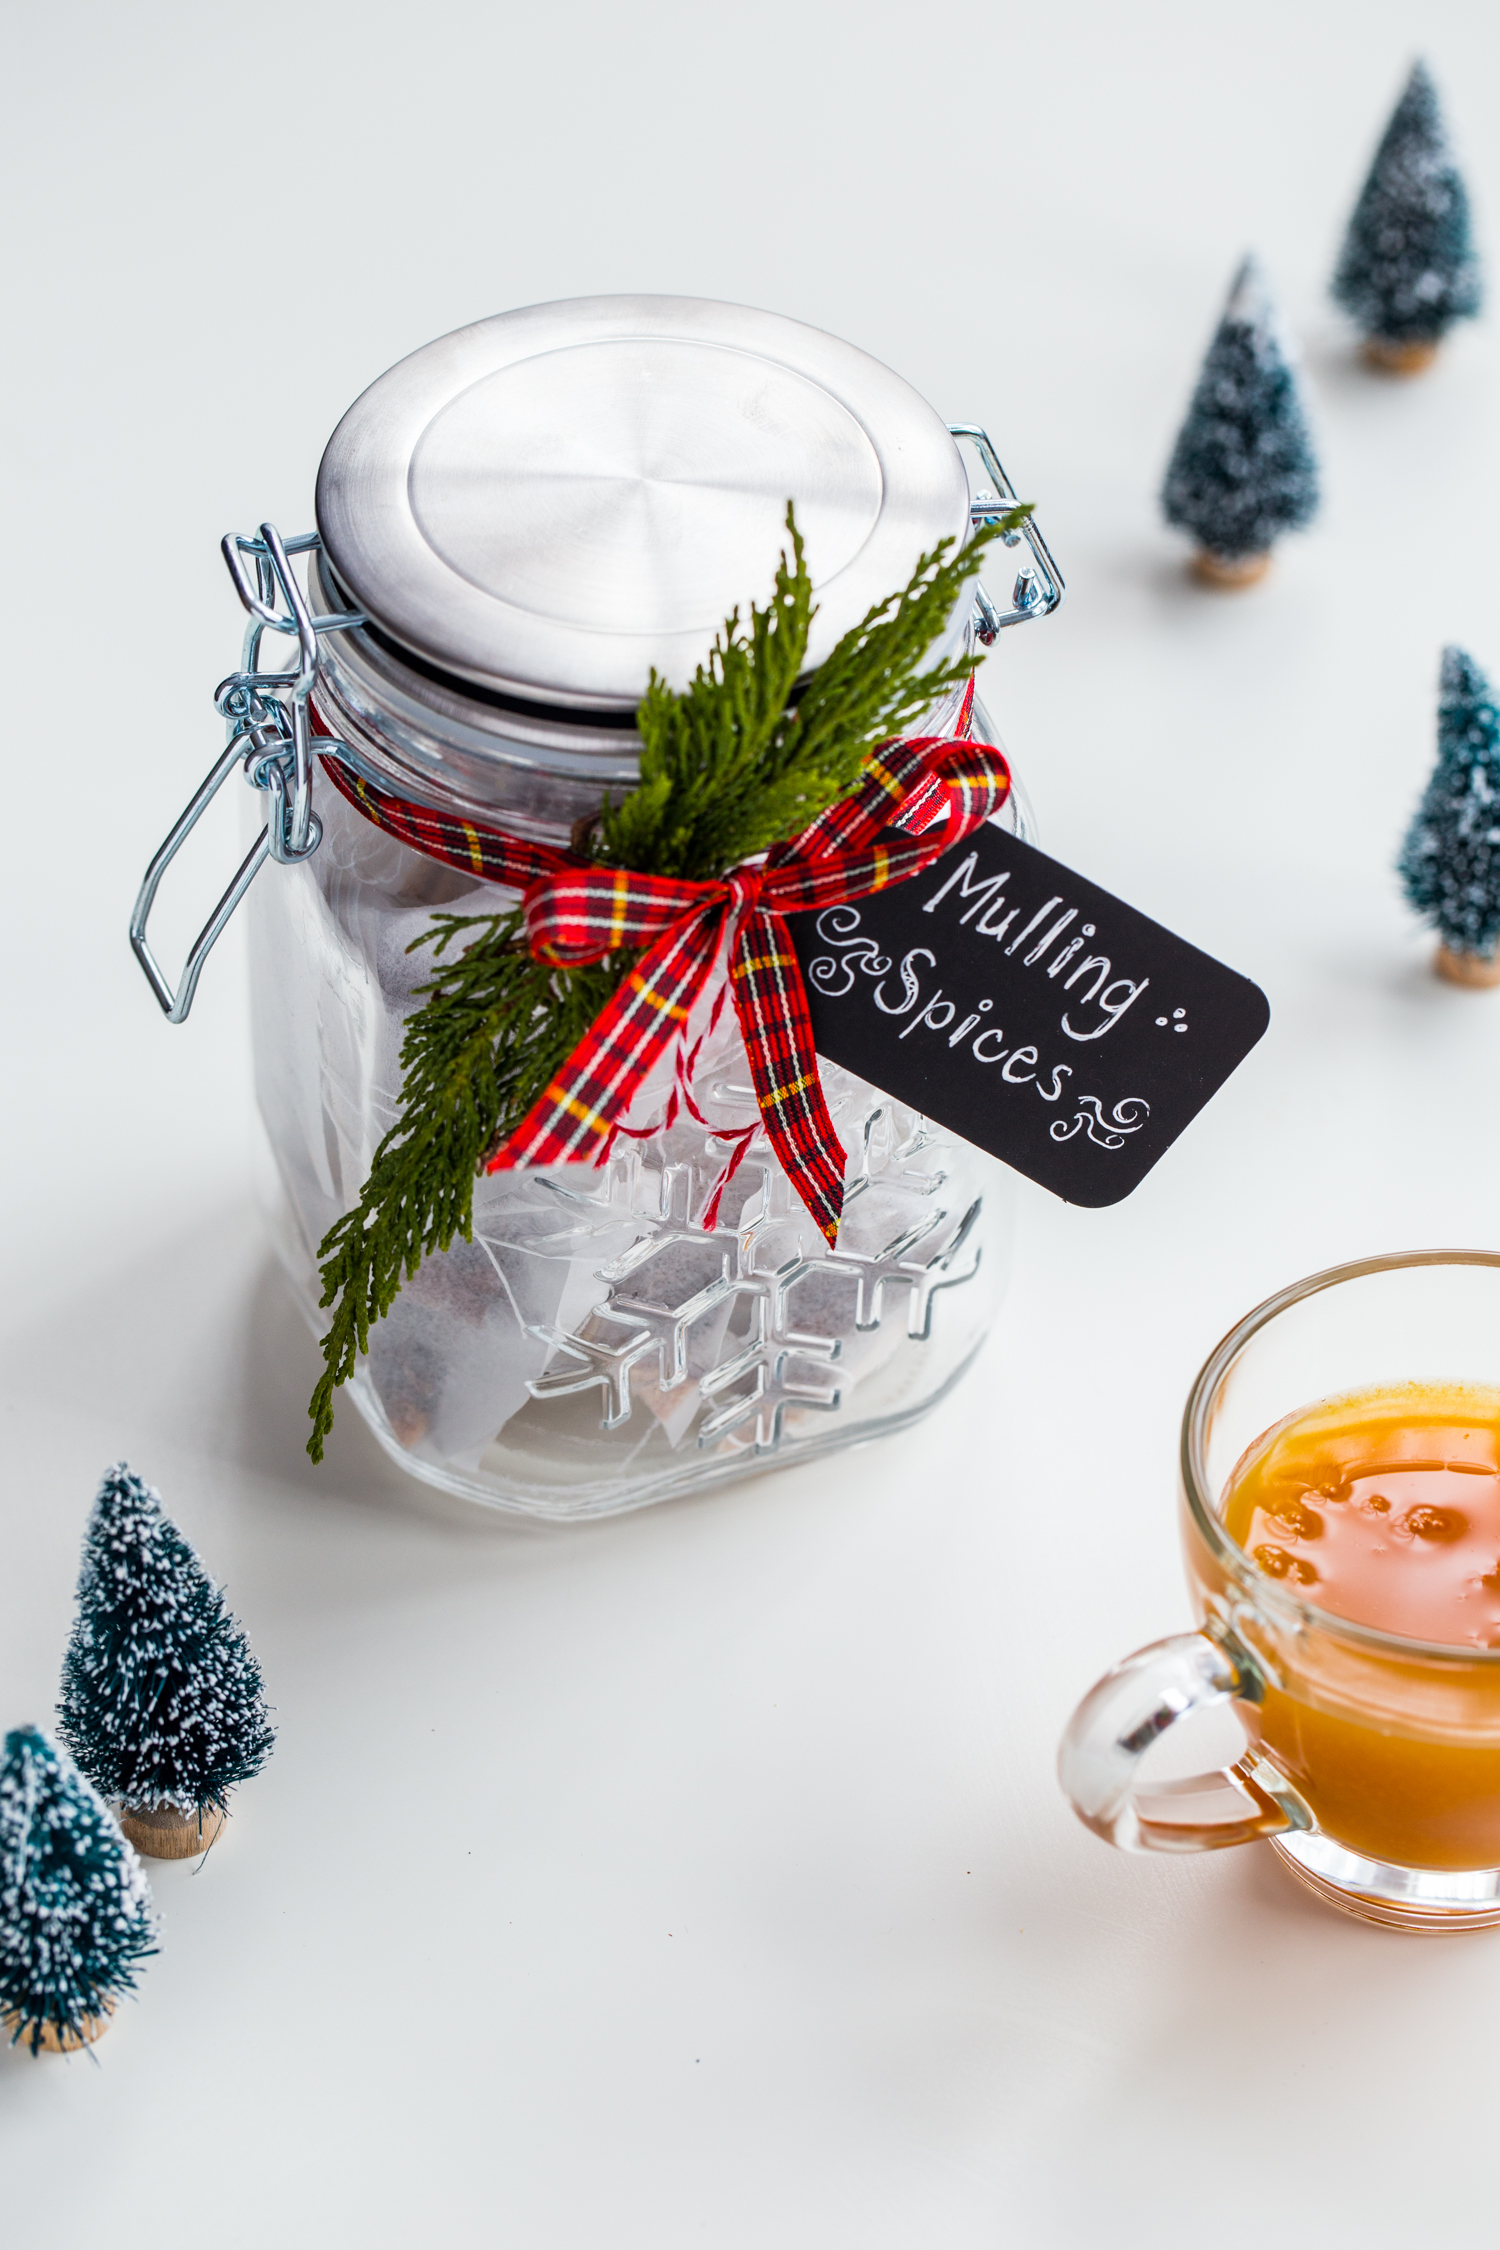 DIY Holiday Mulling Spices make a great hostess gift idea and are extremely versatile for drinks during the holiday season